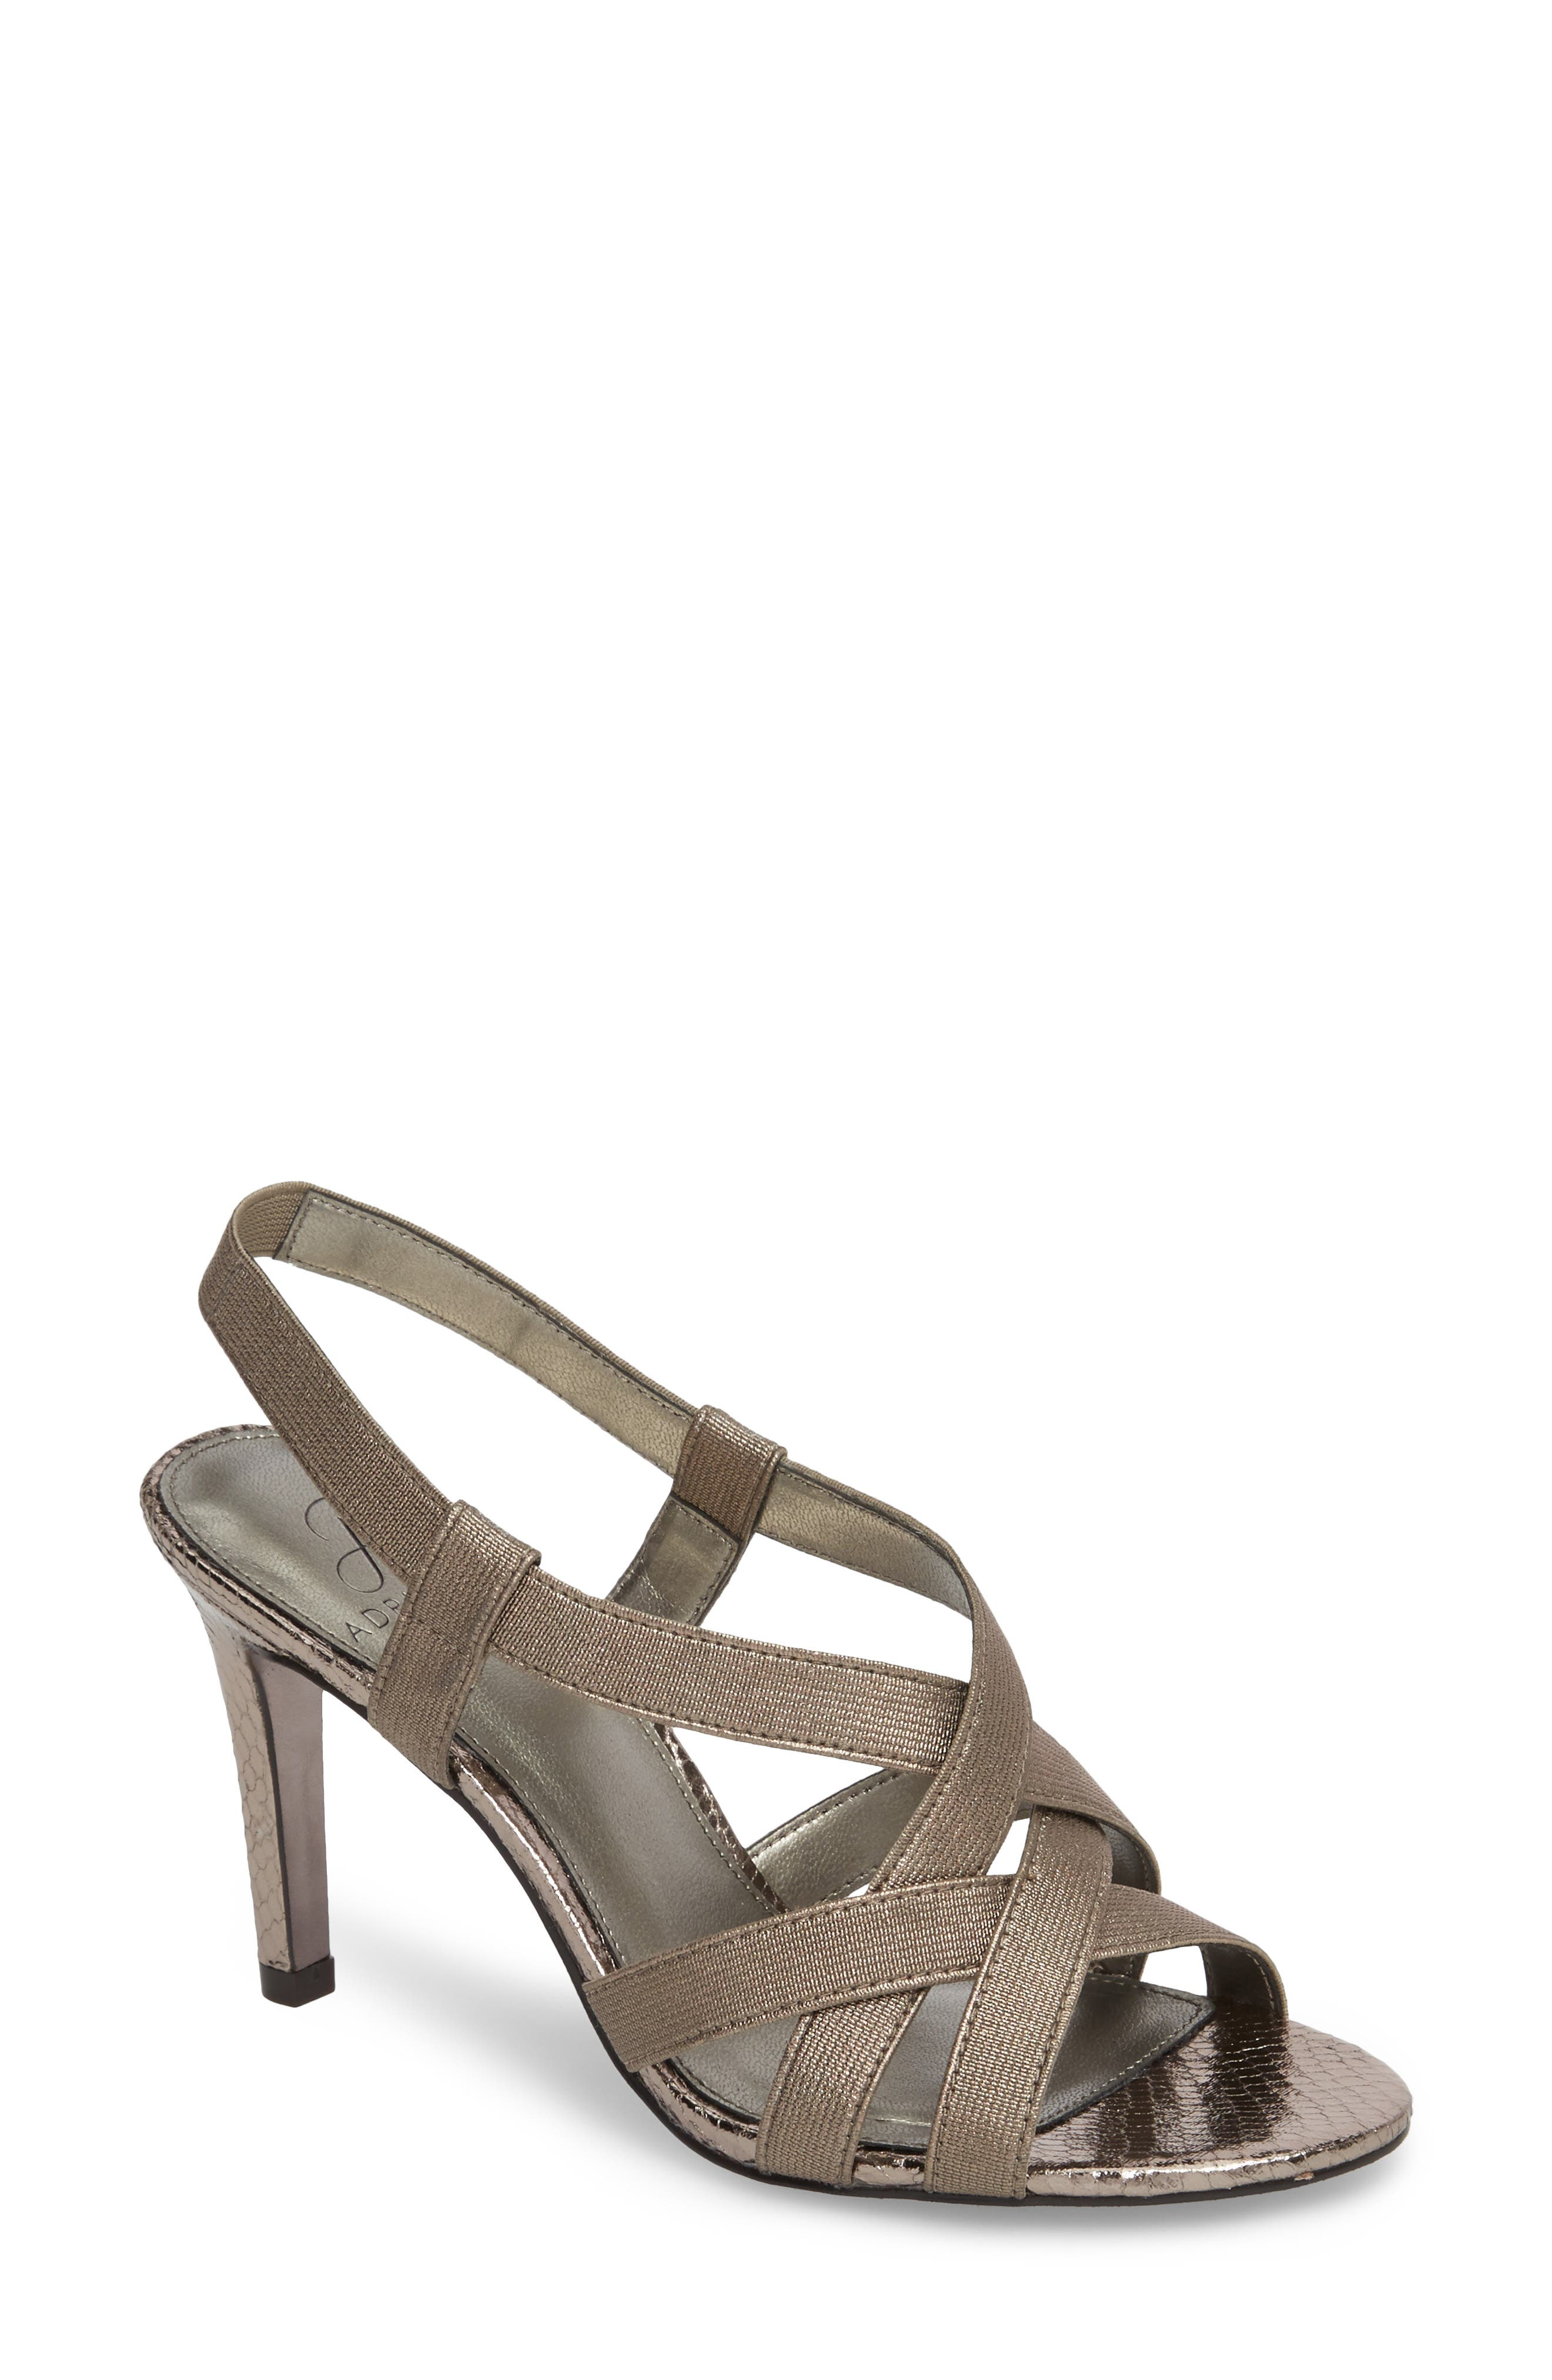 Addie Sandal,                         Main,                         color, Gunmetal Fabric